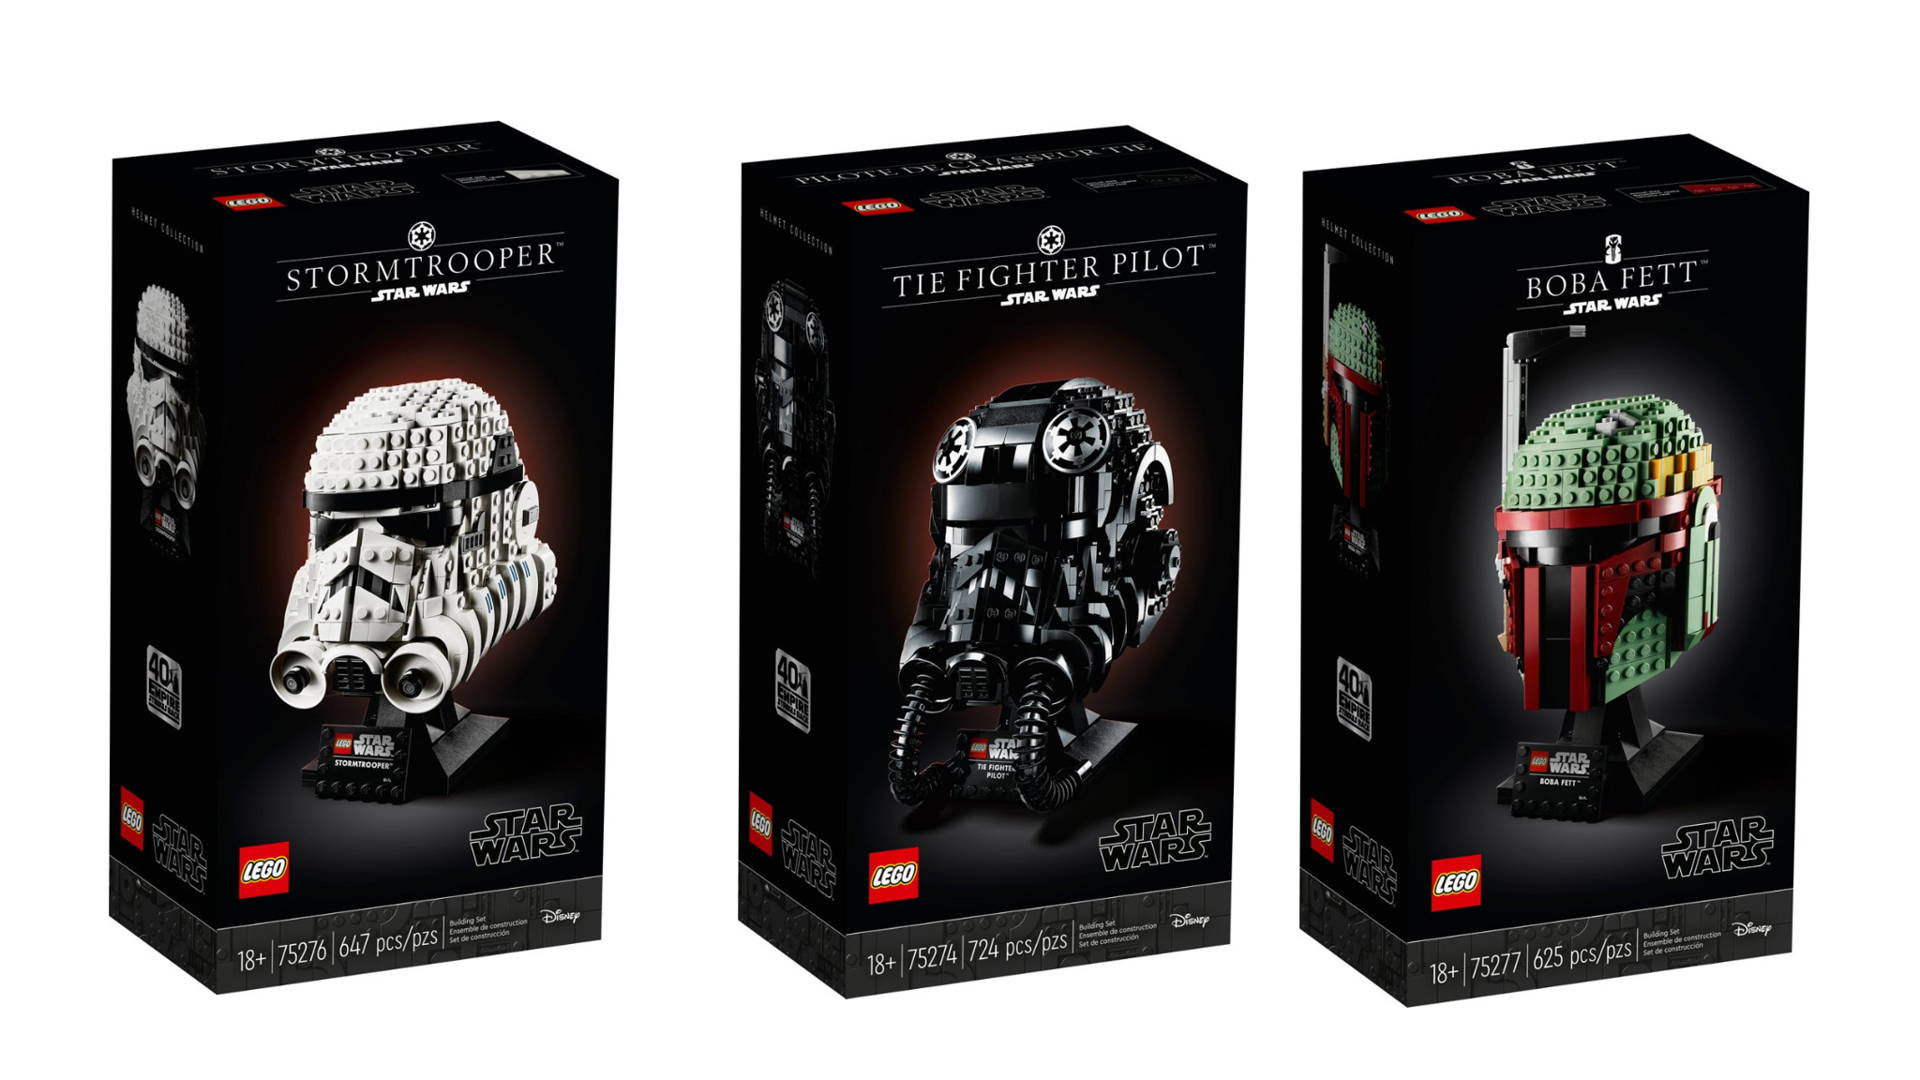 Lego Gets It Designs New Star Wars Kits And Packaging Aimed At Adults Dieline Design Branding Packaging Inspiration